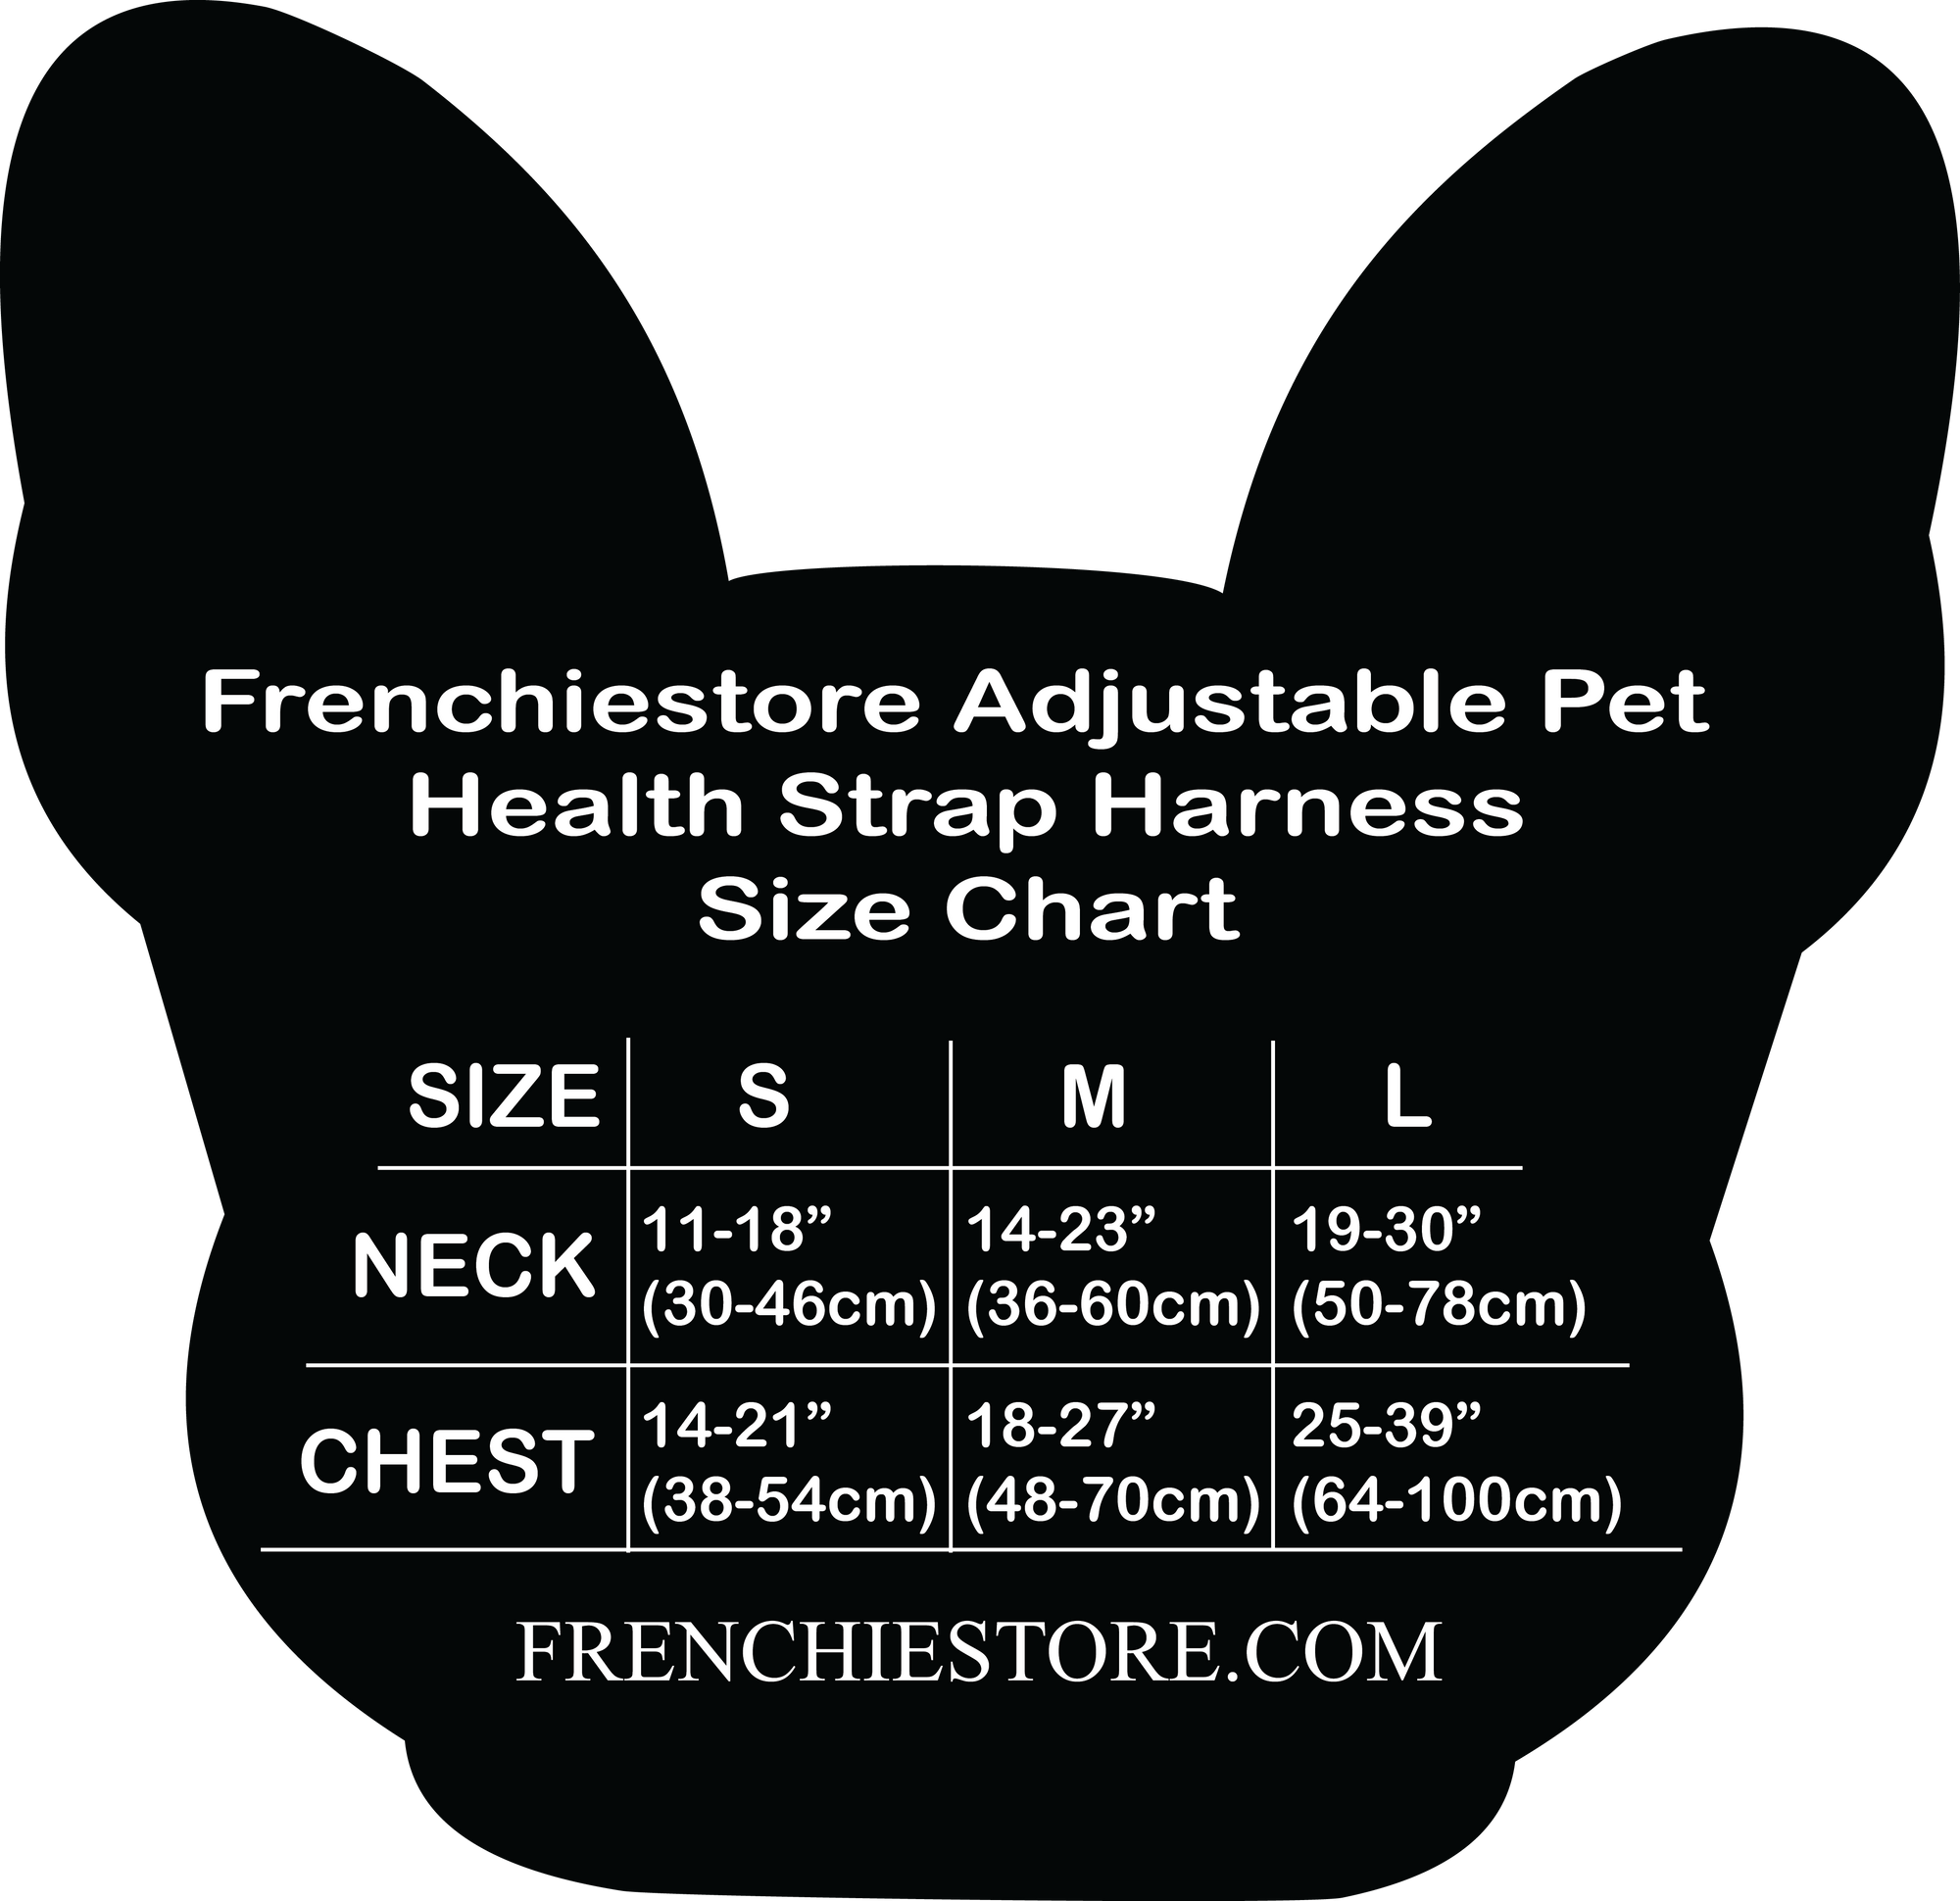 Frenchiestore Adjustable Pet Health Strap Harness | the Child, Frenchie Dog, French Bulldog pet products